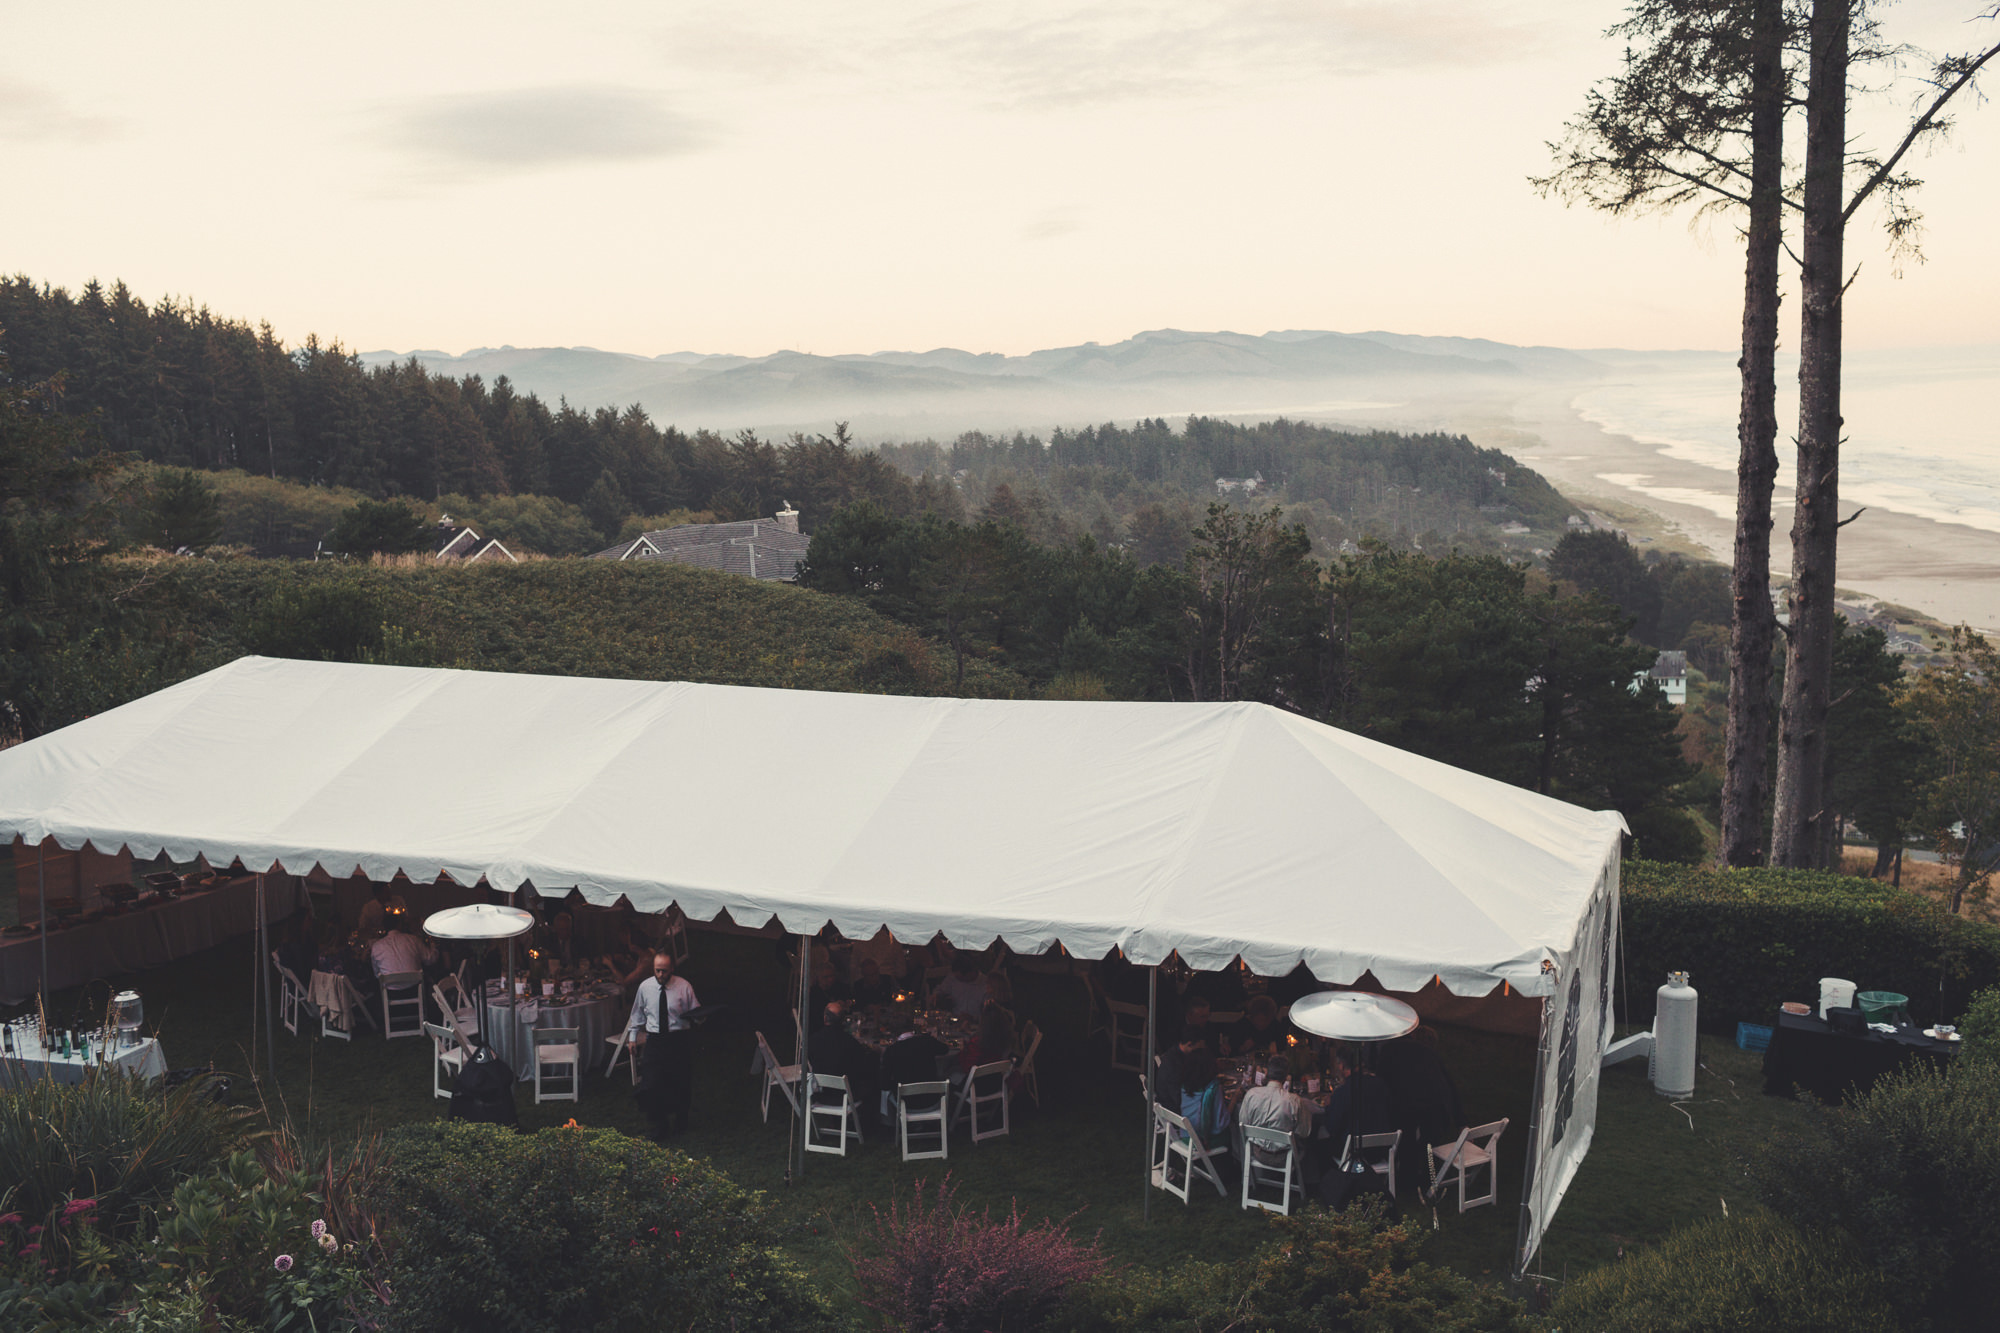 Oregon Backyard Wedding ©Anne-Claire Brun 221